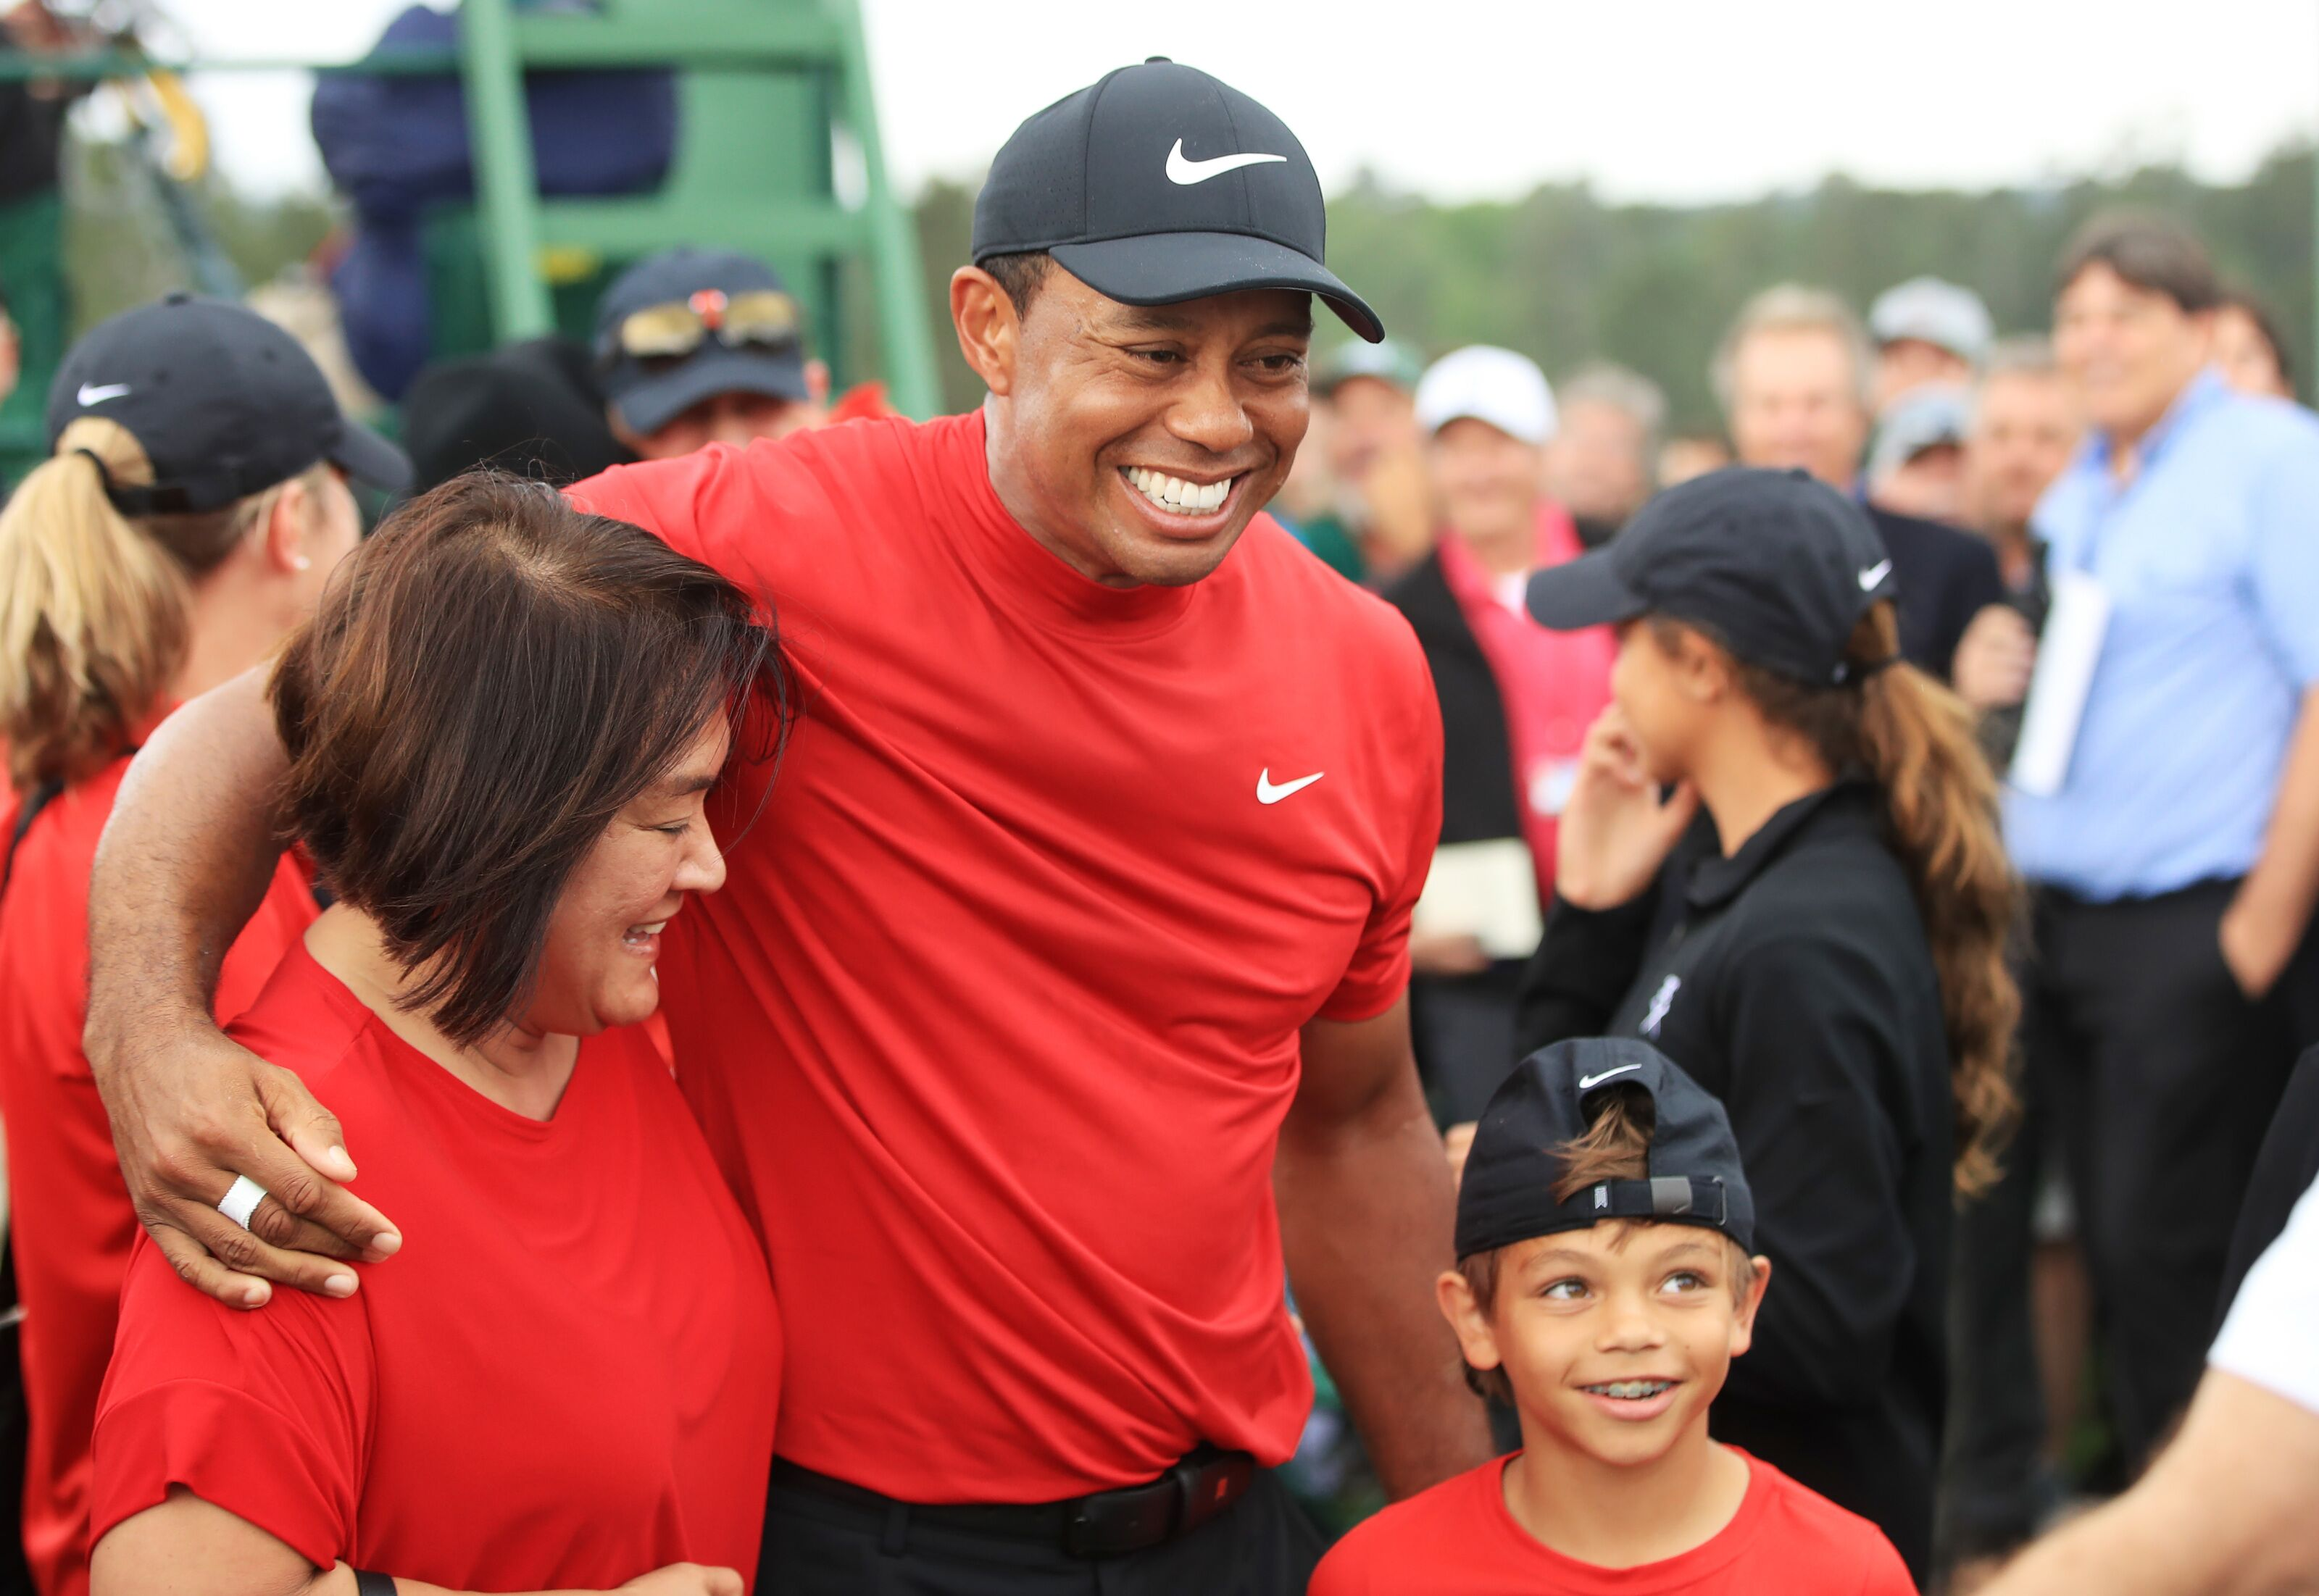 AUGUSTA, GEORGIA - APRIL 14: Tiger Woods of the United States celebrates with his son Charlie Axel as he comes off the 18th hole in honor of his win during the final round of the Masters at Augusta National Golf Club on April 14, 2019 in Augusta, Georgia. (Photo by Andrew Redington/Getty Images)